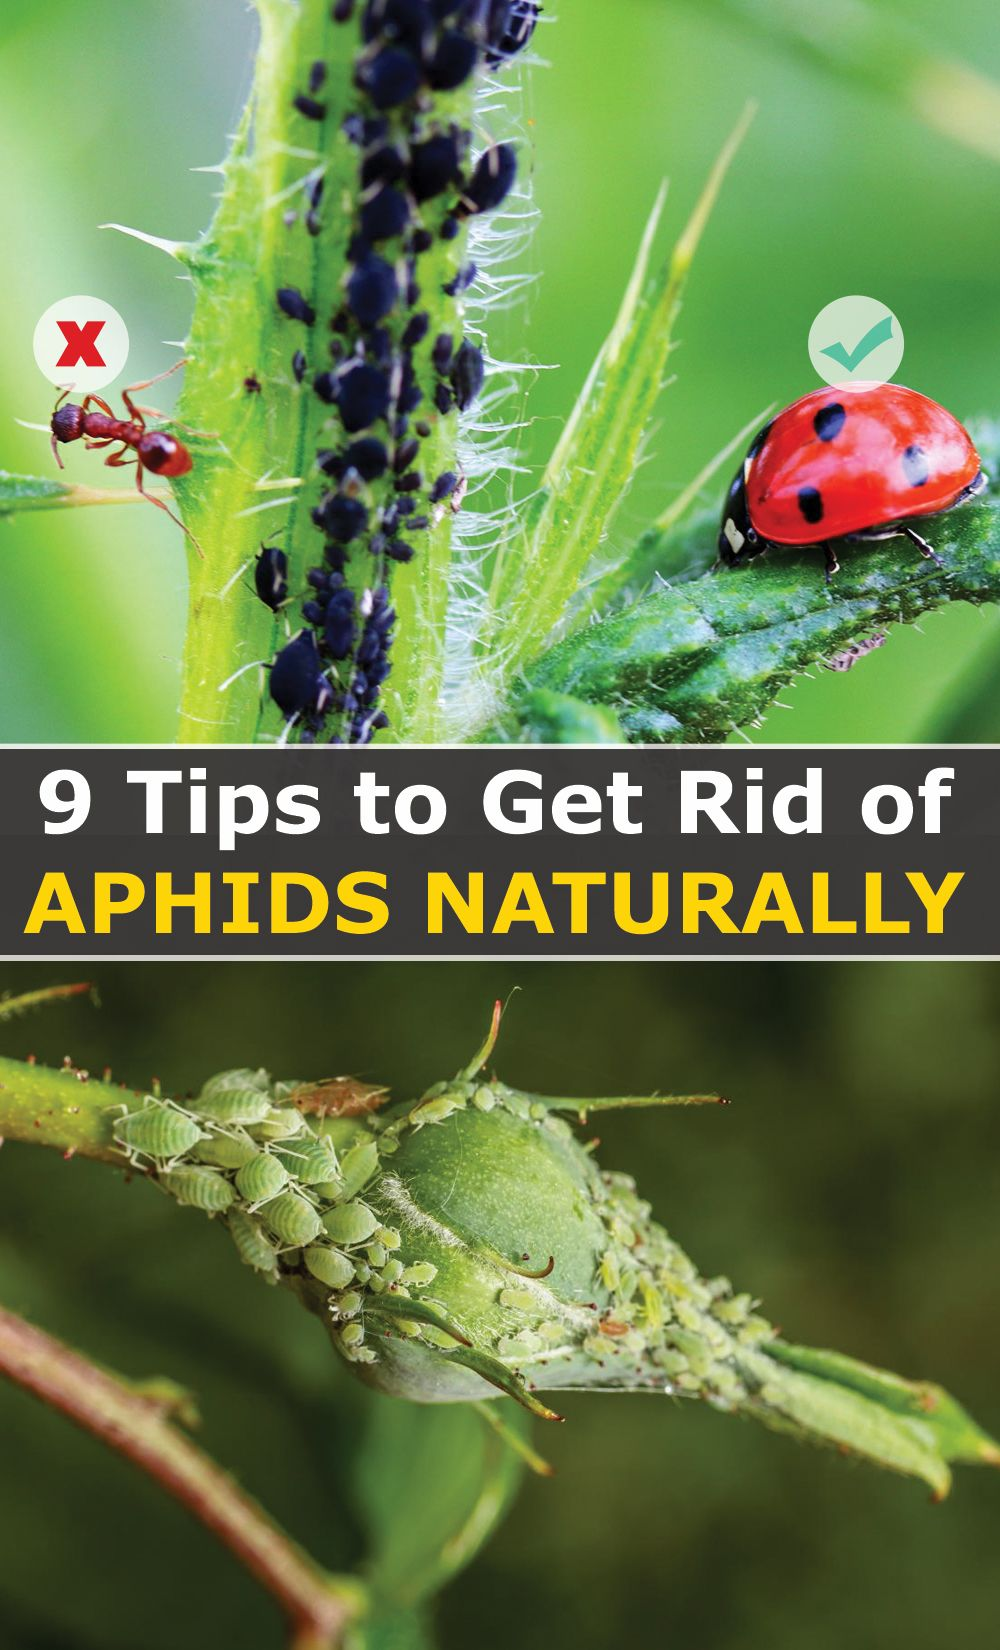 9 Tips To Get Rid Of Aphids Naturally Only What Works In 2020 Get Rid Of Aphids Aphids How To Get Rid